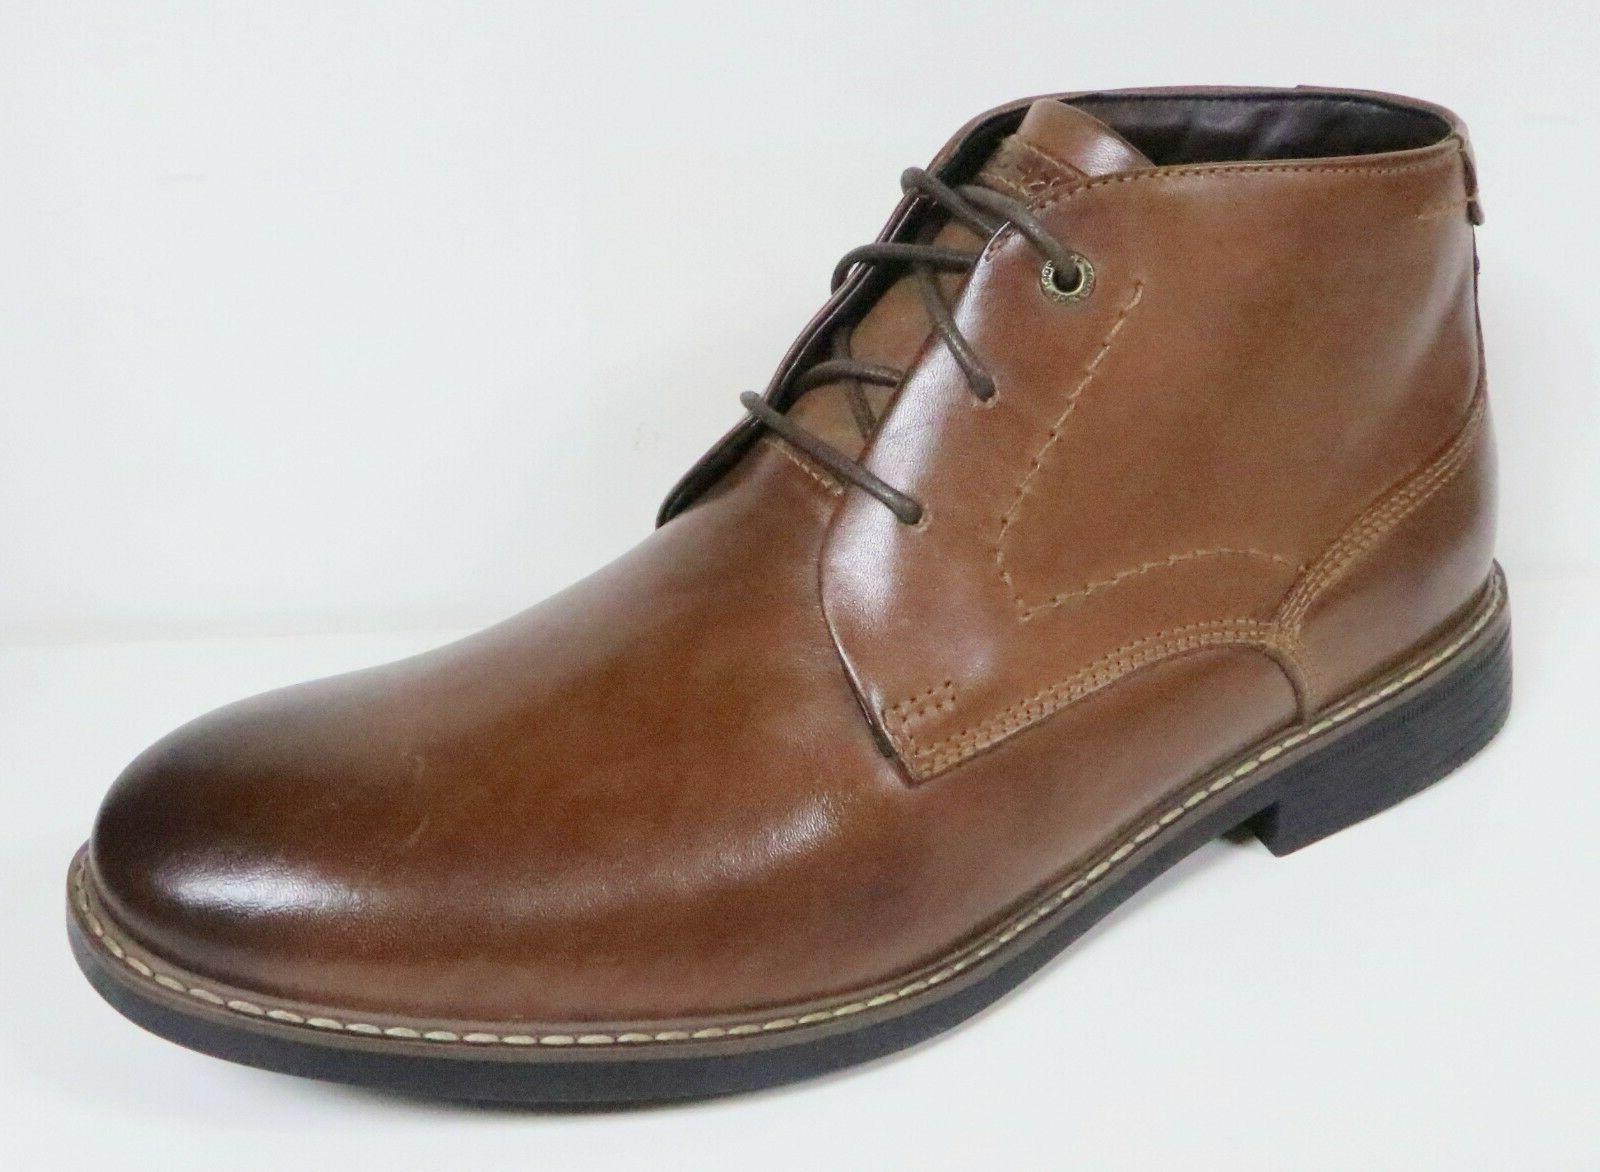 ROCKPORT CLASSIC BREAK MEN'S BROWN LEATHER CHUKKA BOOTS LACE